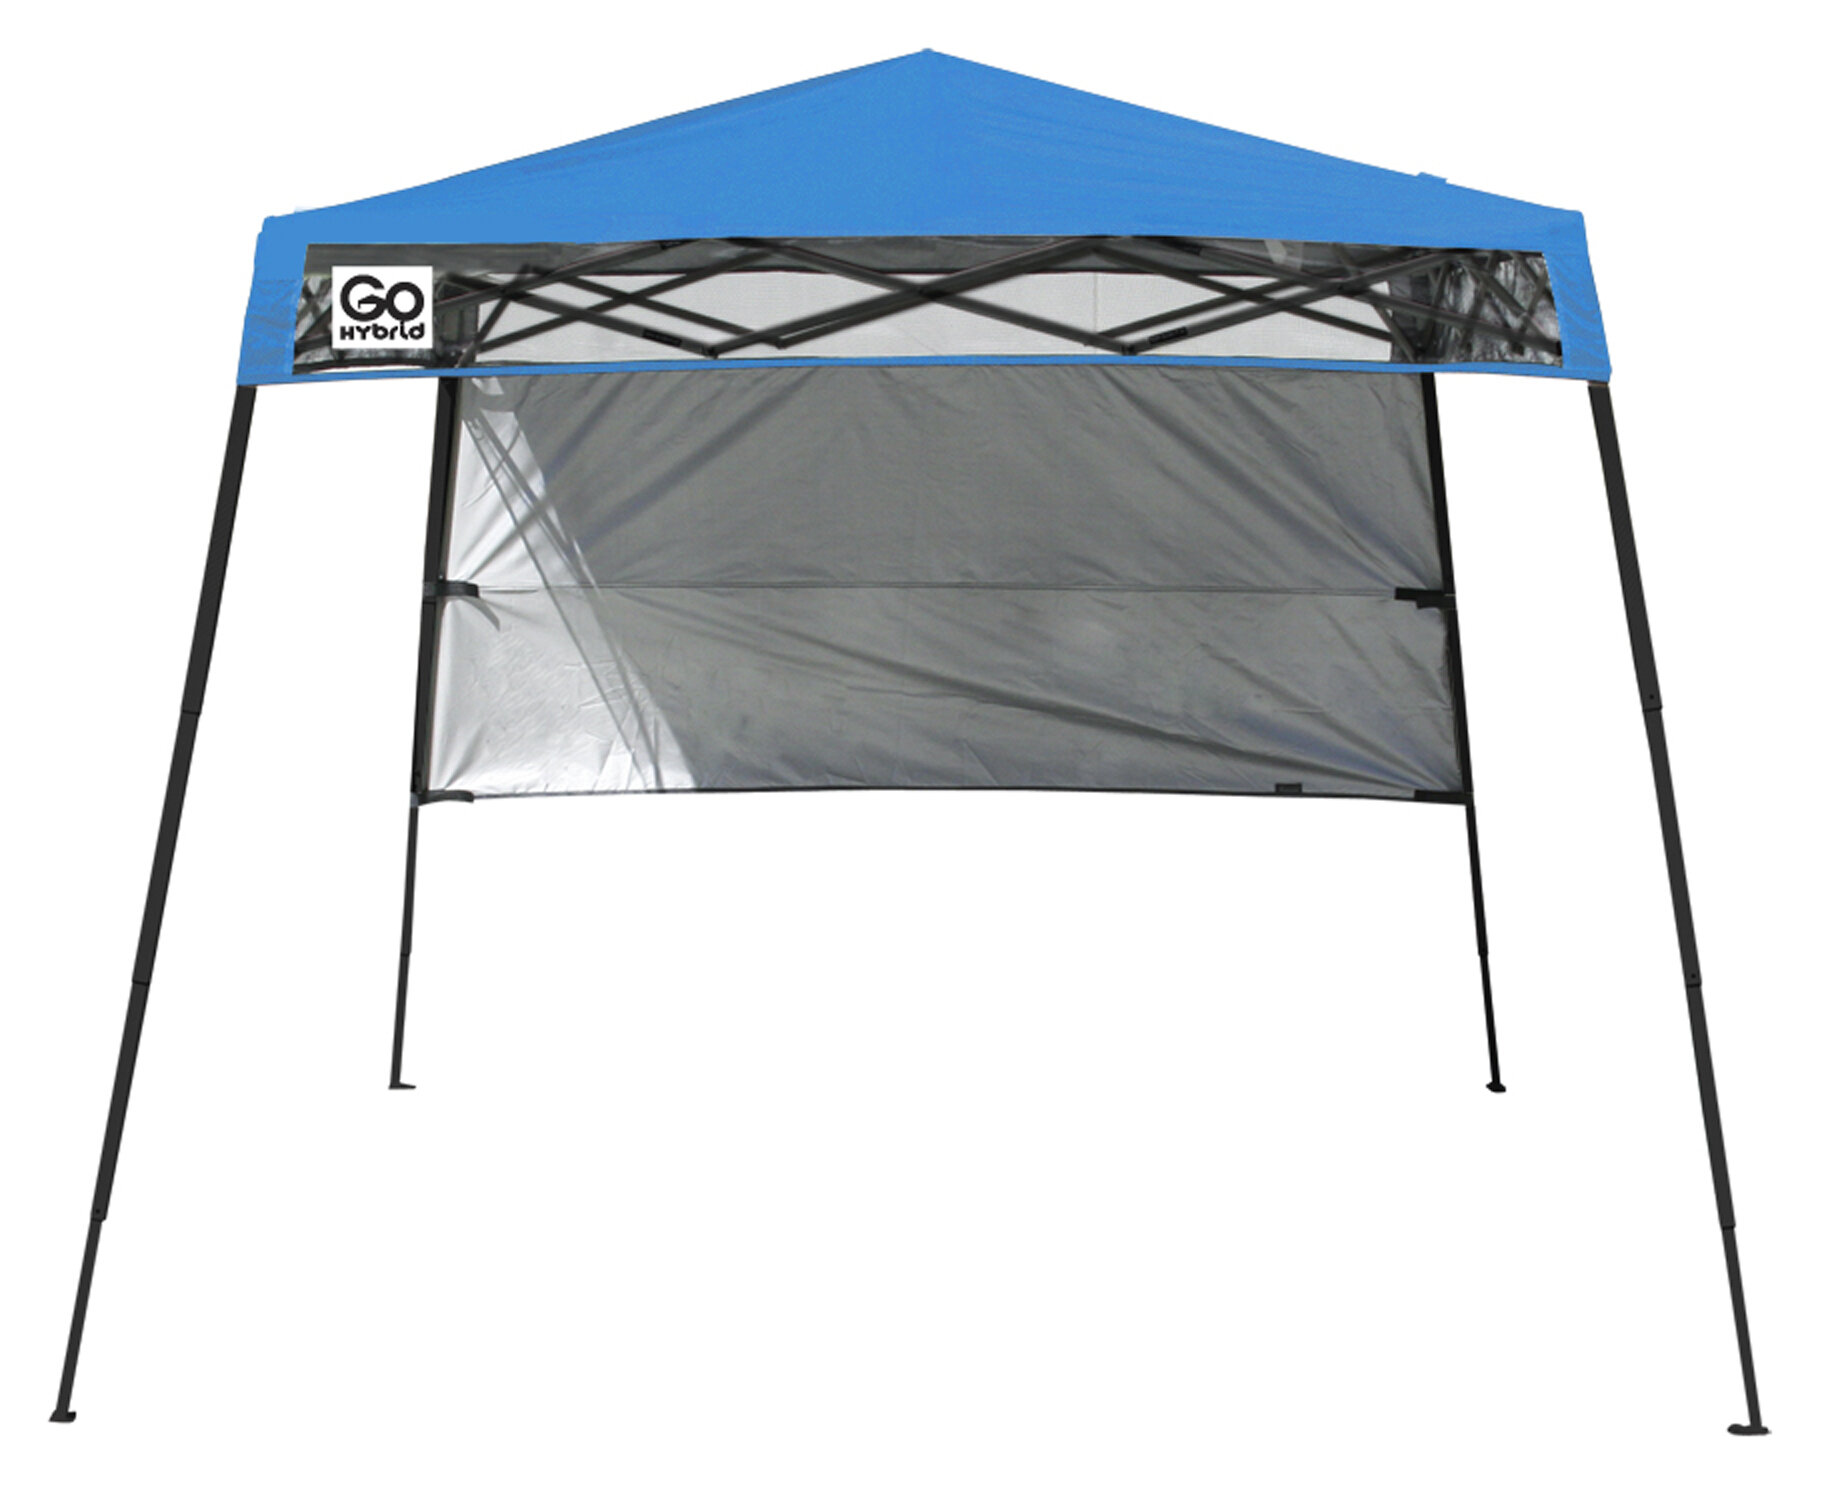 QuikShade Quik Shade 7 Ft. W x 7 Ft. D Steel Pop-Up Canopy u0026 Reviews | Wayfair  sc 1 st  Wayfair & QuikShade Quik Shade 7 Ft. W x 7 Ft. D Steel Pop-Up Canopy ...